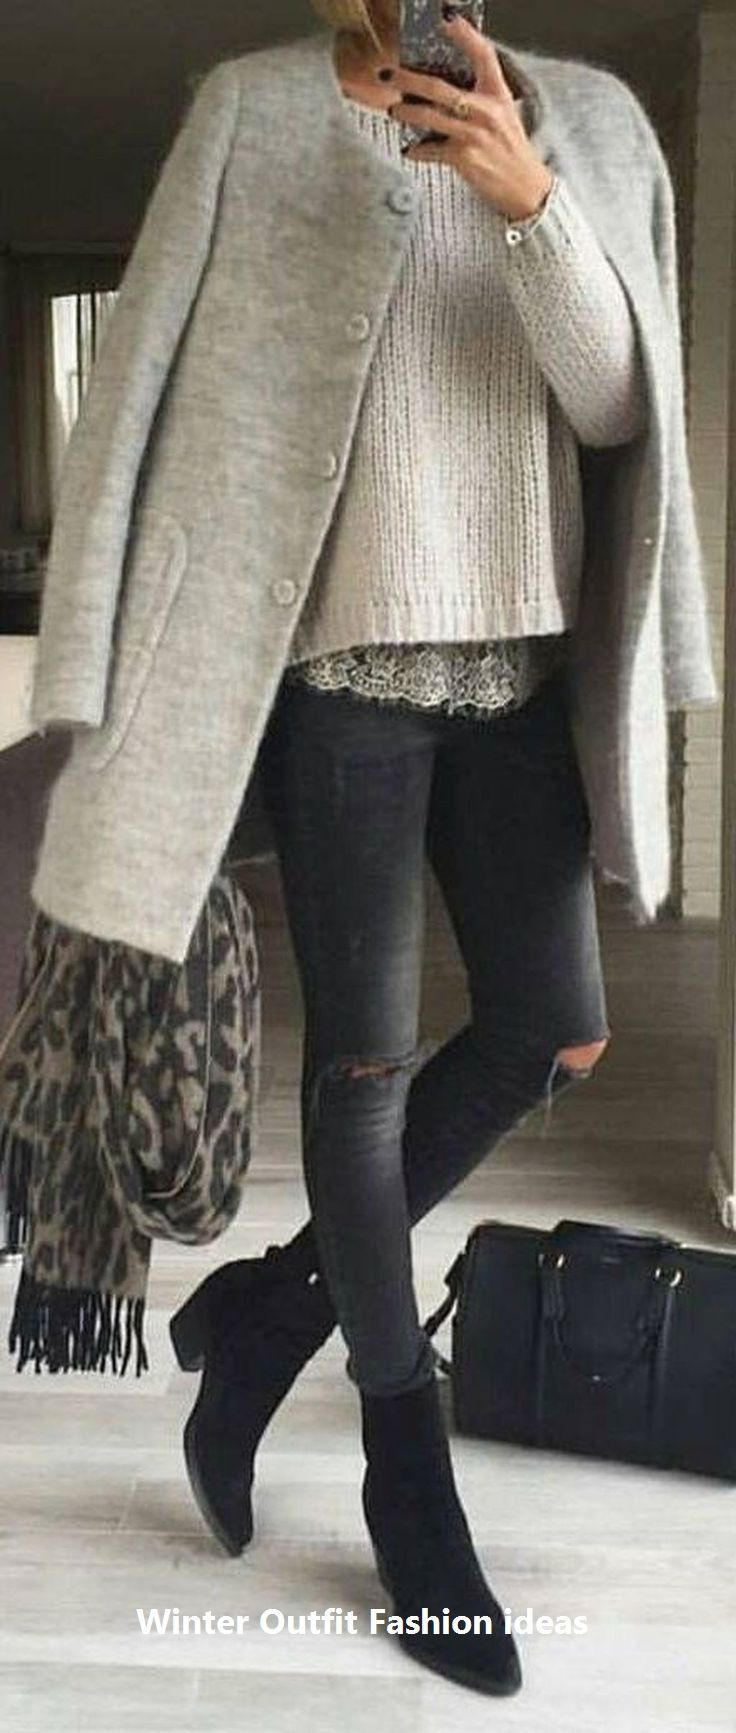 Elegant and Cozy Outfits Ideas for Winter 21 #fashion